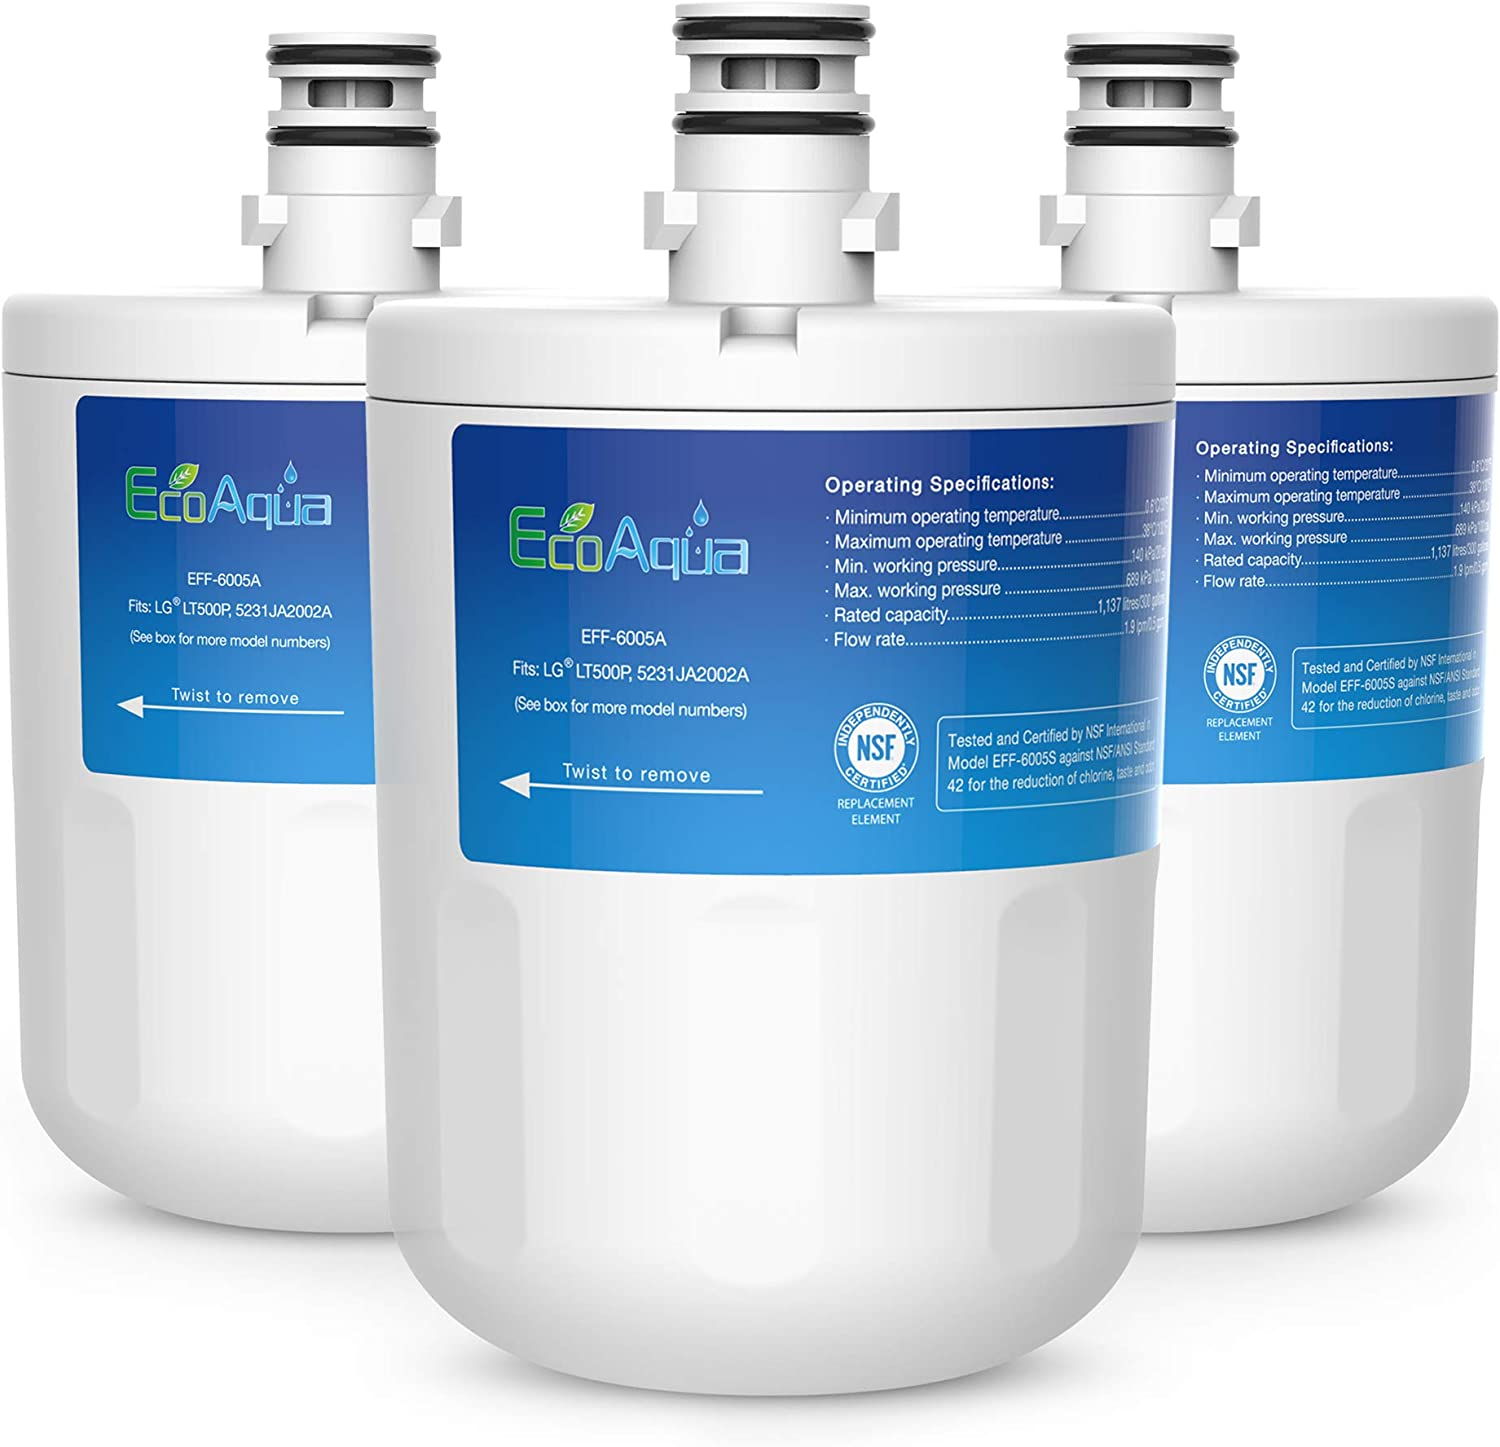 EcoAqua EFF-6005A Replacement Filter, Compatible with LG LT500P, 5231JA2002A, ADQ72910901, Kenmore GEN11042FR-08, 9890, 46-9890, 3 Pack